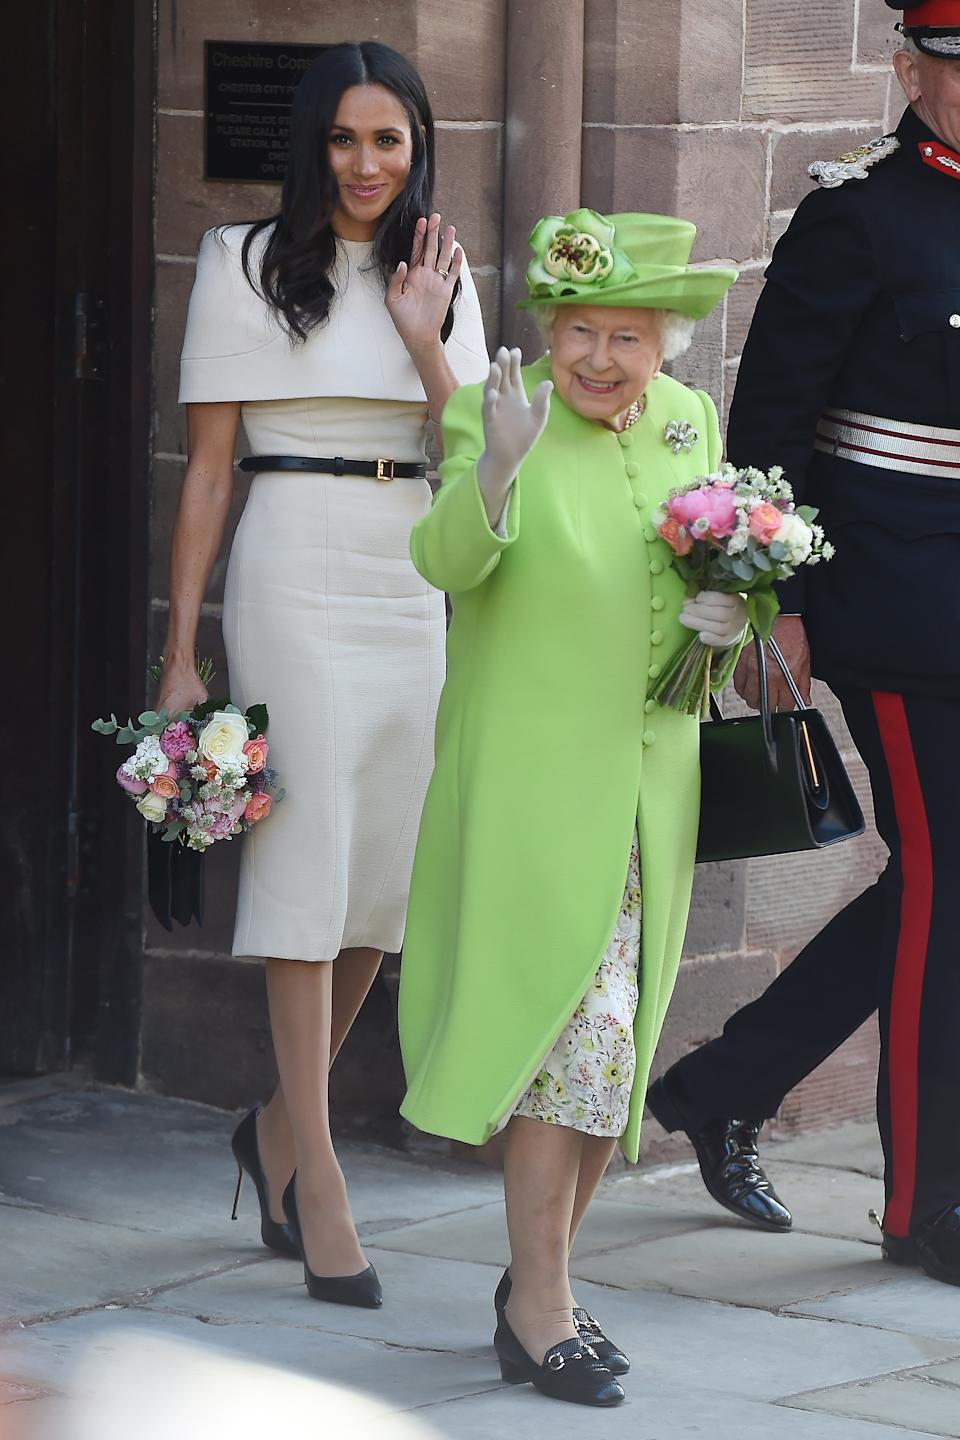 <p>In June 2018, Markle accompanied the Queen on the royal train for a day visit in Chester wearing a structured taupe pencil dress by go-to designer, Givenchy.<em>(Image via Getty Images)</em></p>